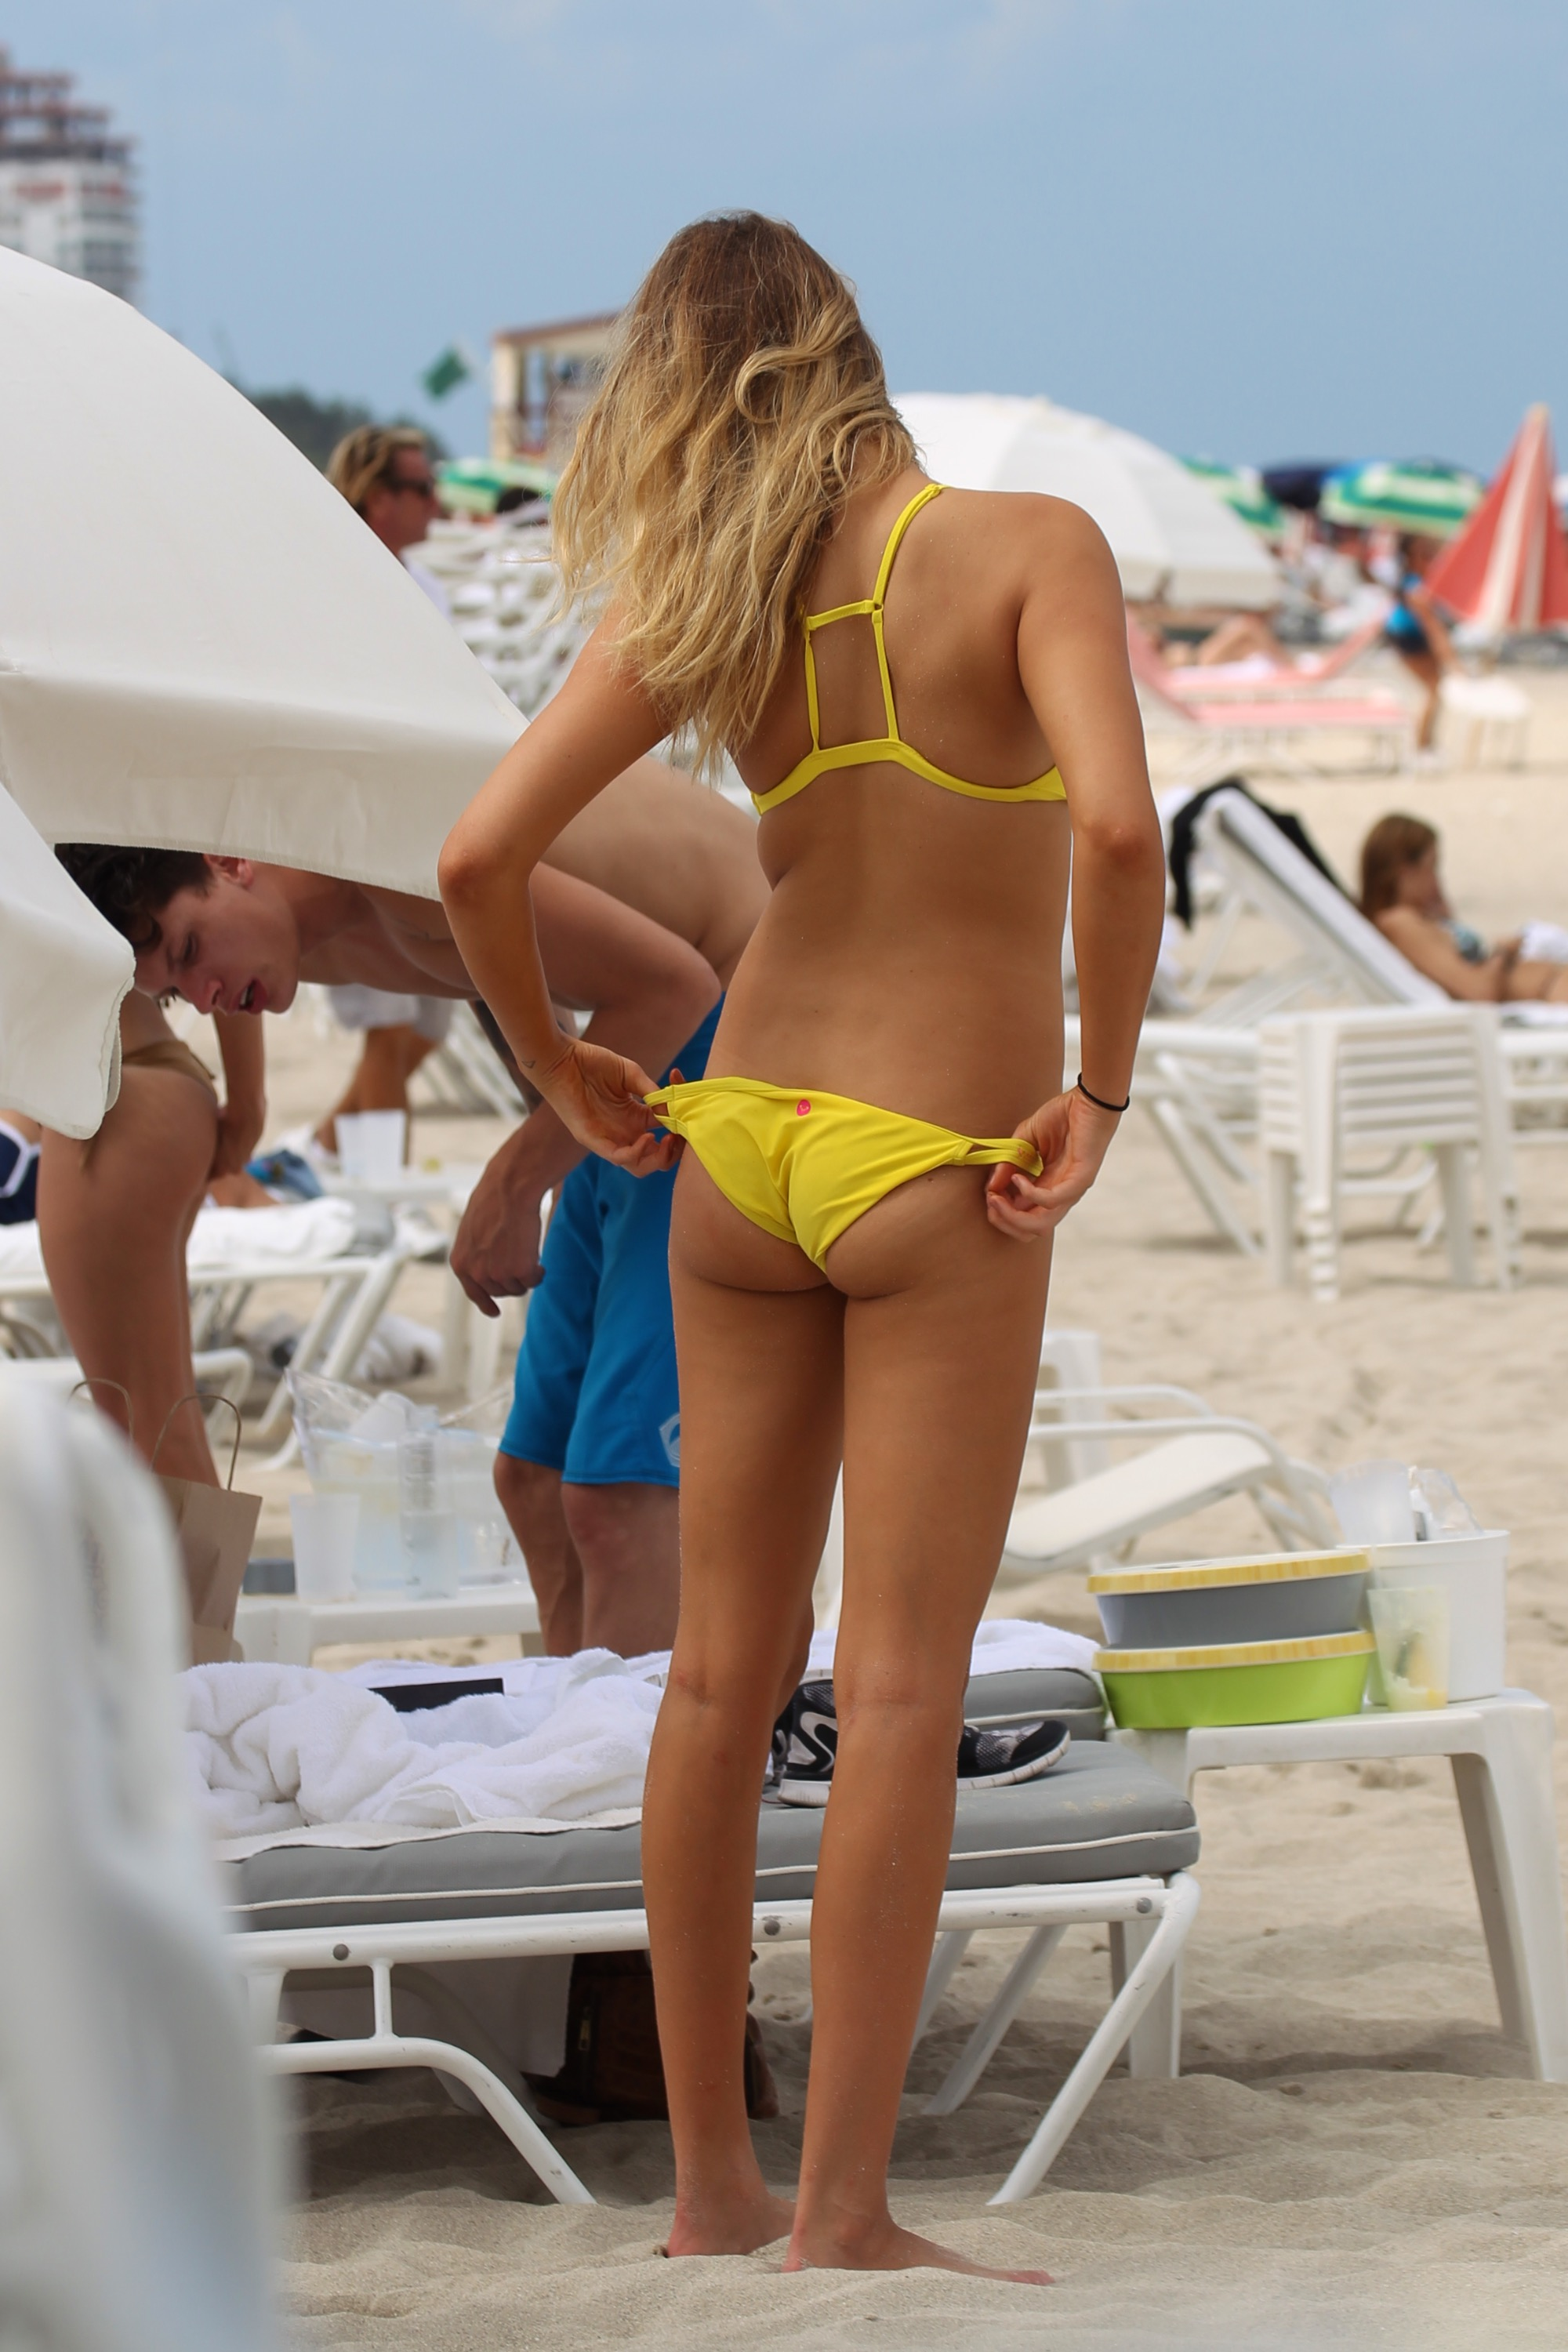 2016 Sports Illustrated Covergirl Hailey Clauson on the beach in Miami. (Photo credit: Splash News)